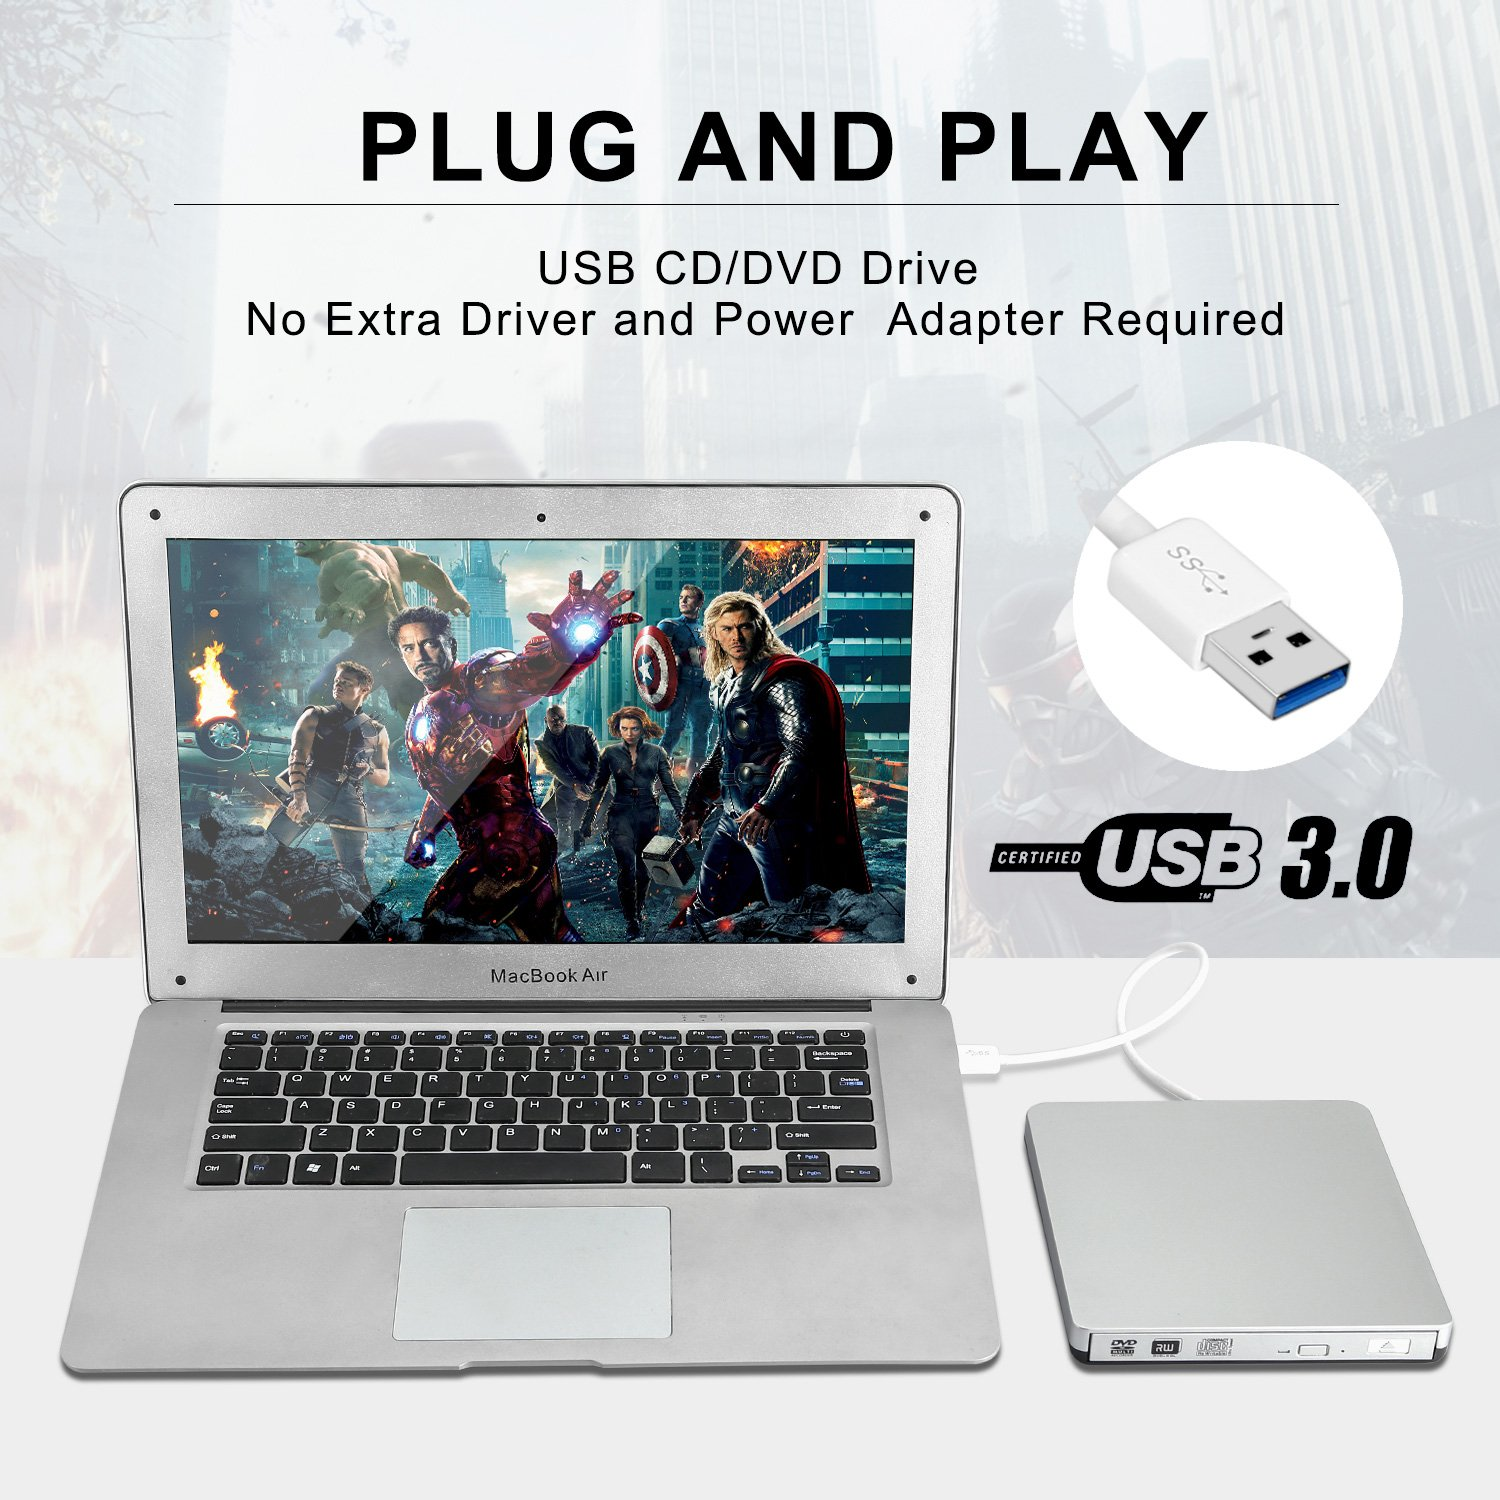 ZSMJ External USB 3.0 DVD Drive, DVD-RW CD-RW Writer Burner Player with Classic Silvery for Apple MacBook Air, Macbook Pro, Mac OS, PC Laptop by DoHonest (Image #5)